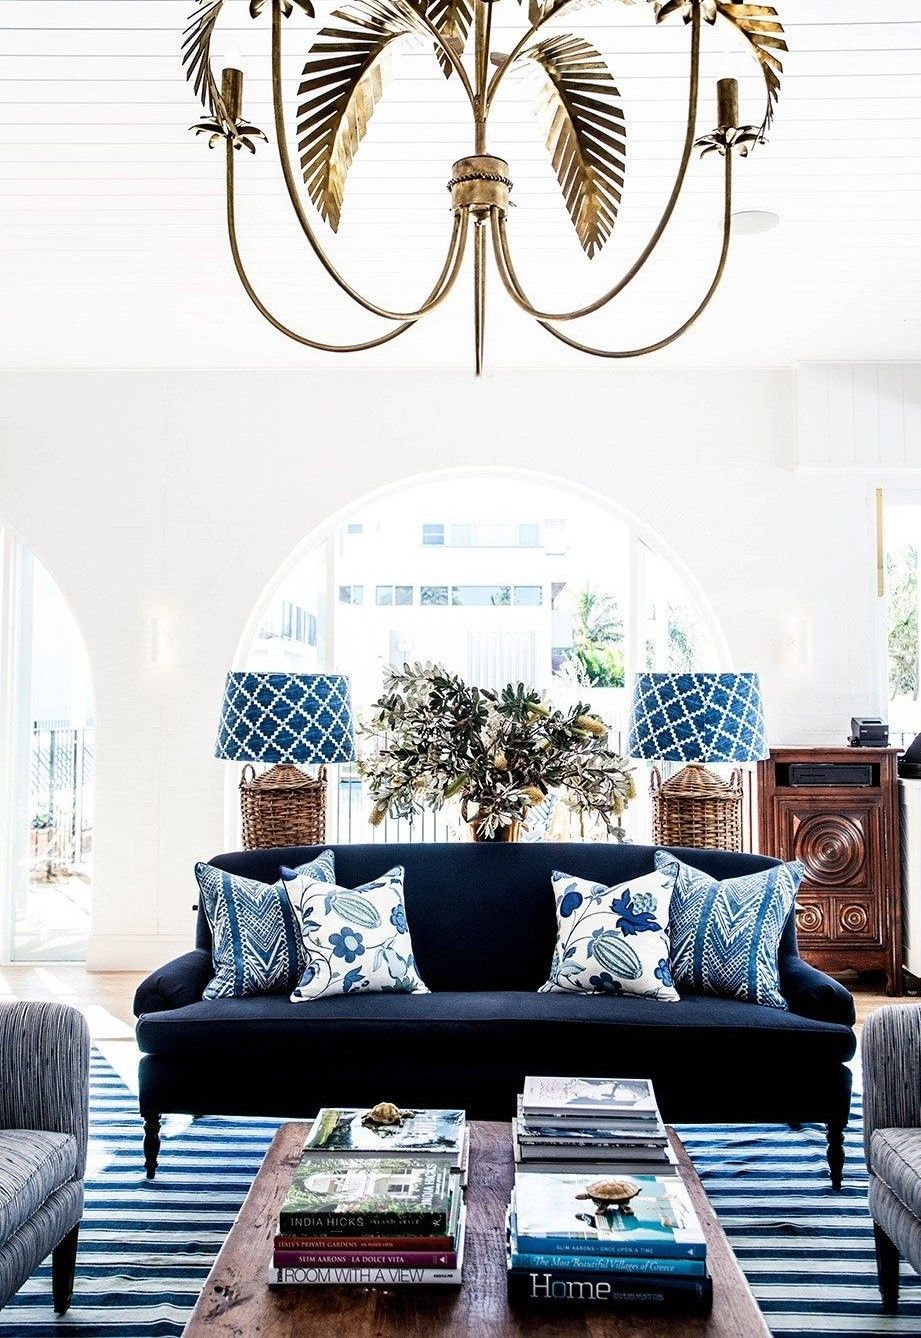 Colonial Elegant Living Room Furniture: Interior Decorating: Into The Blue Part II